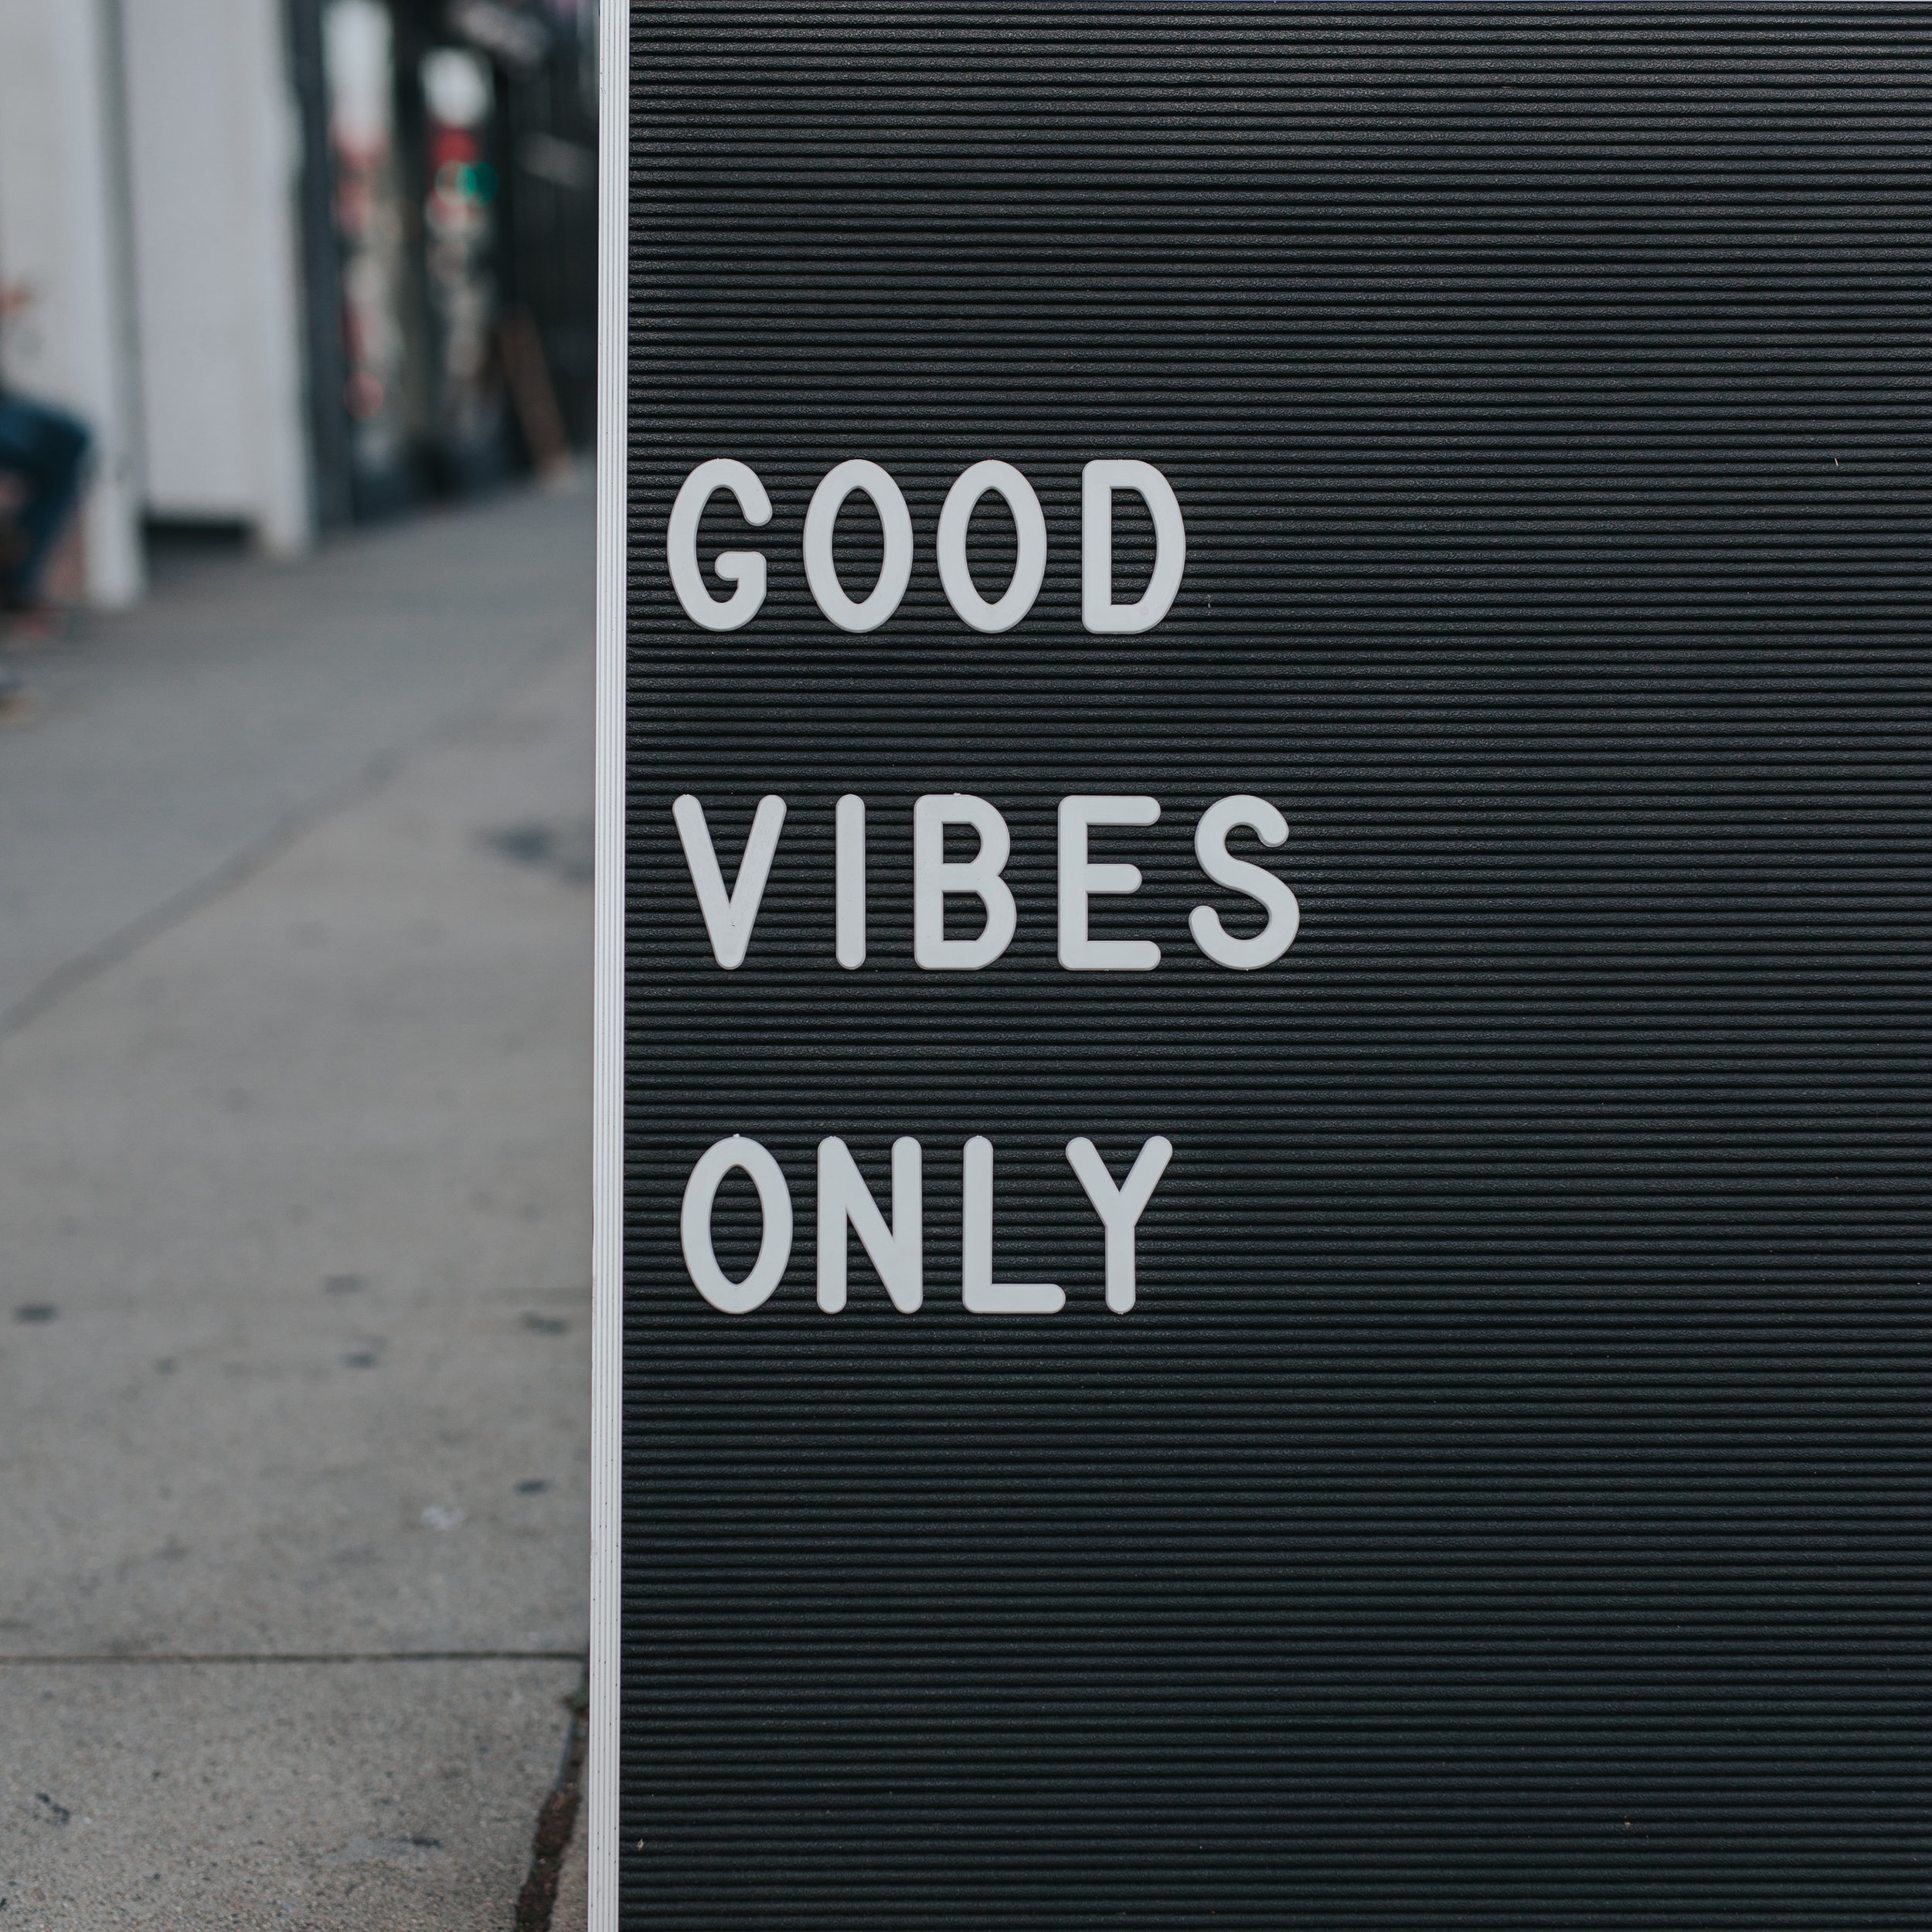 On Tuesday Nights, I do yoga so I plot this into my calendar.Good Vibes Only, Please! -